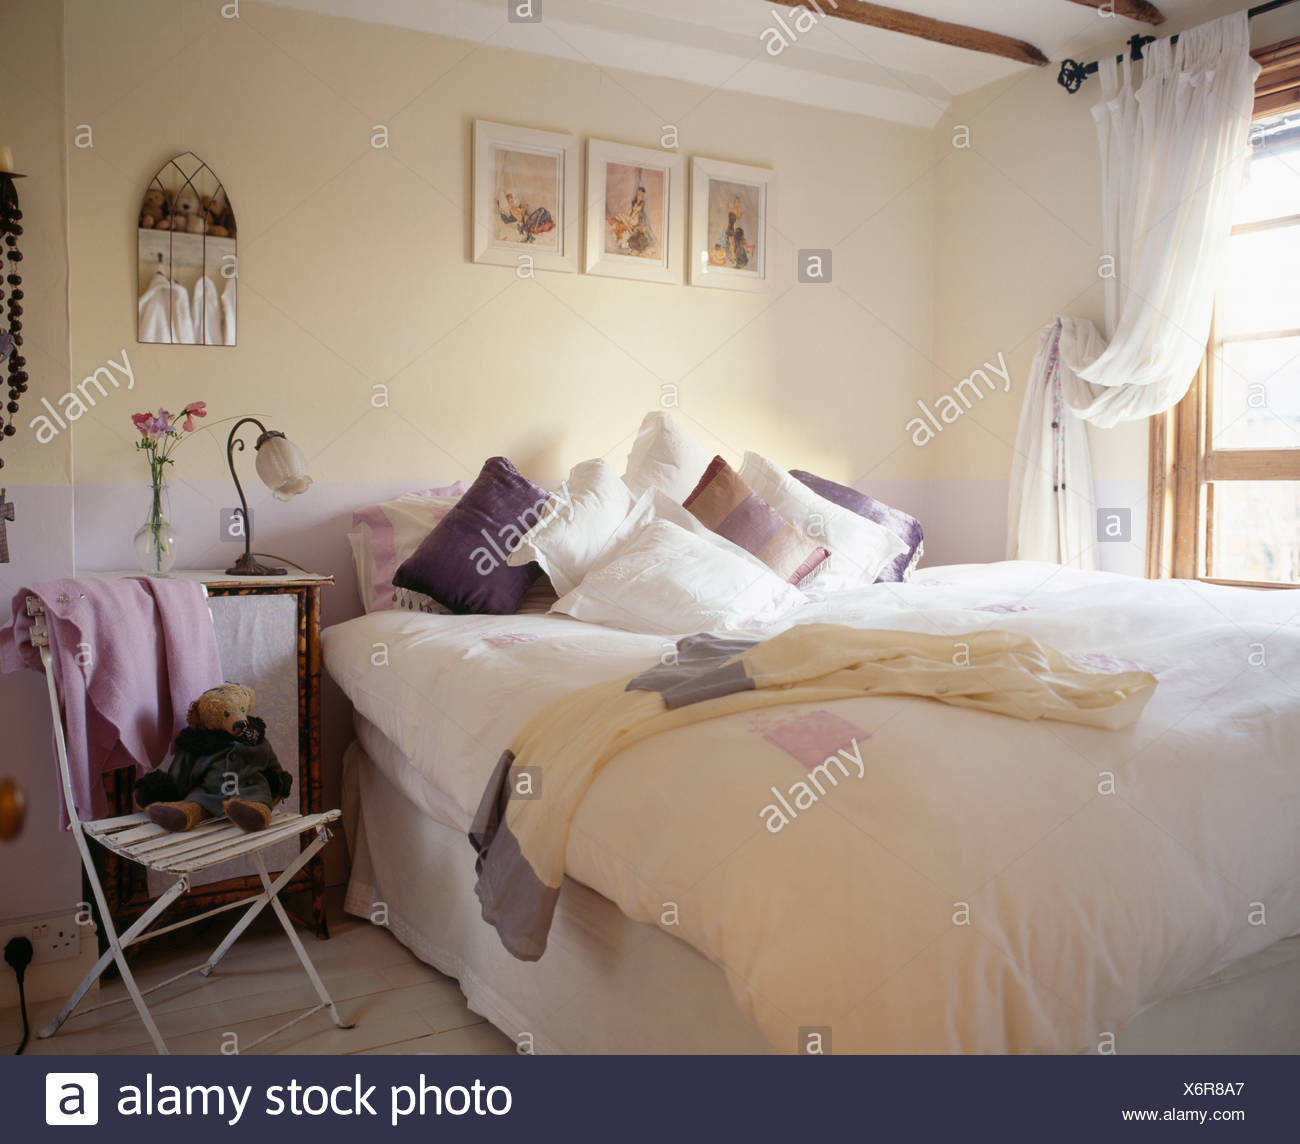 bedroom chair for clothes swing daraz bed piled with pillows in cream country thrown over small metal beside